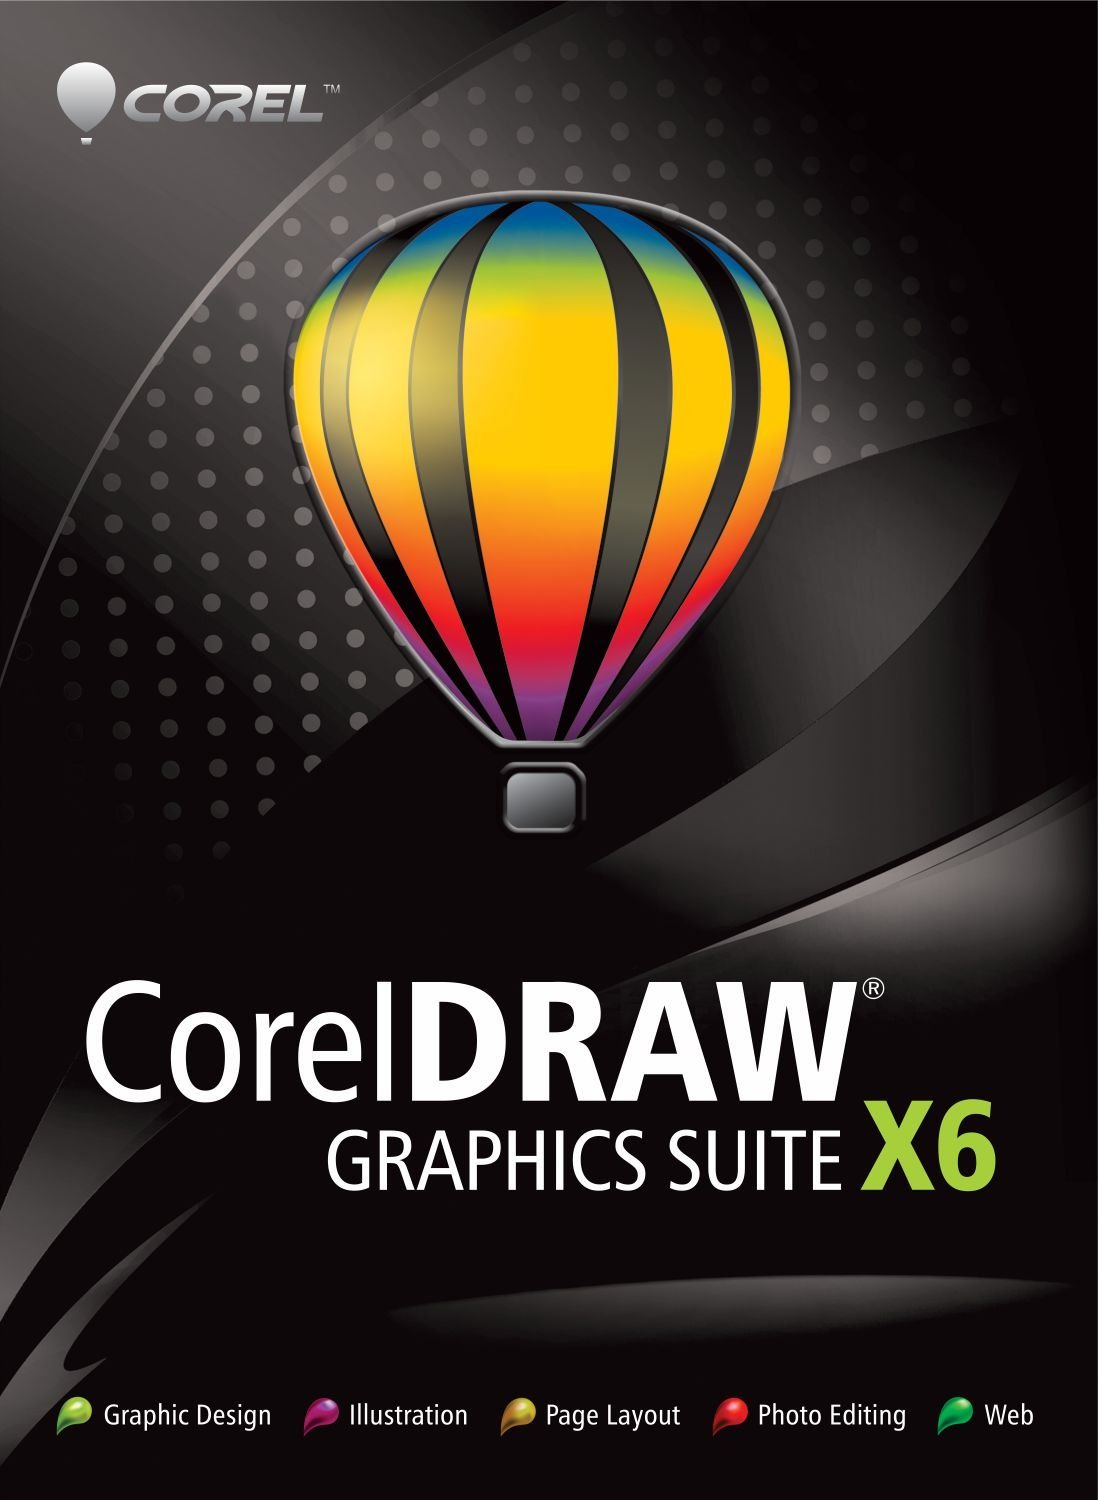 Coreldraw graphics suite x6 full software, free download